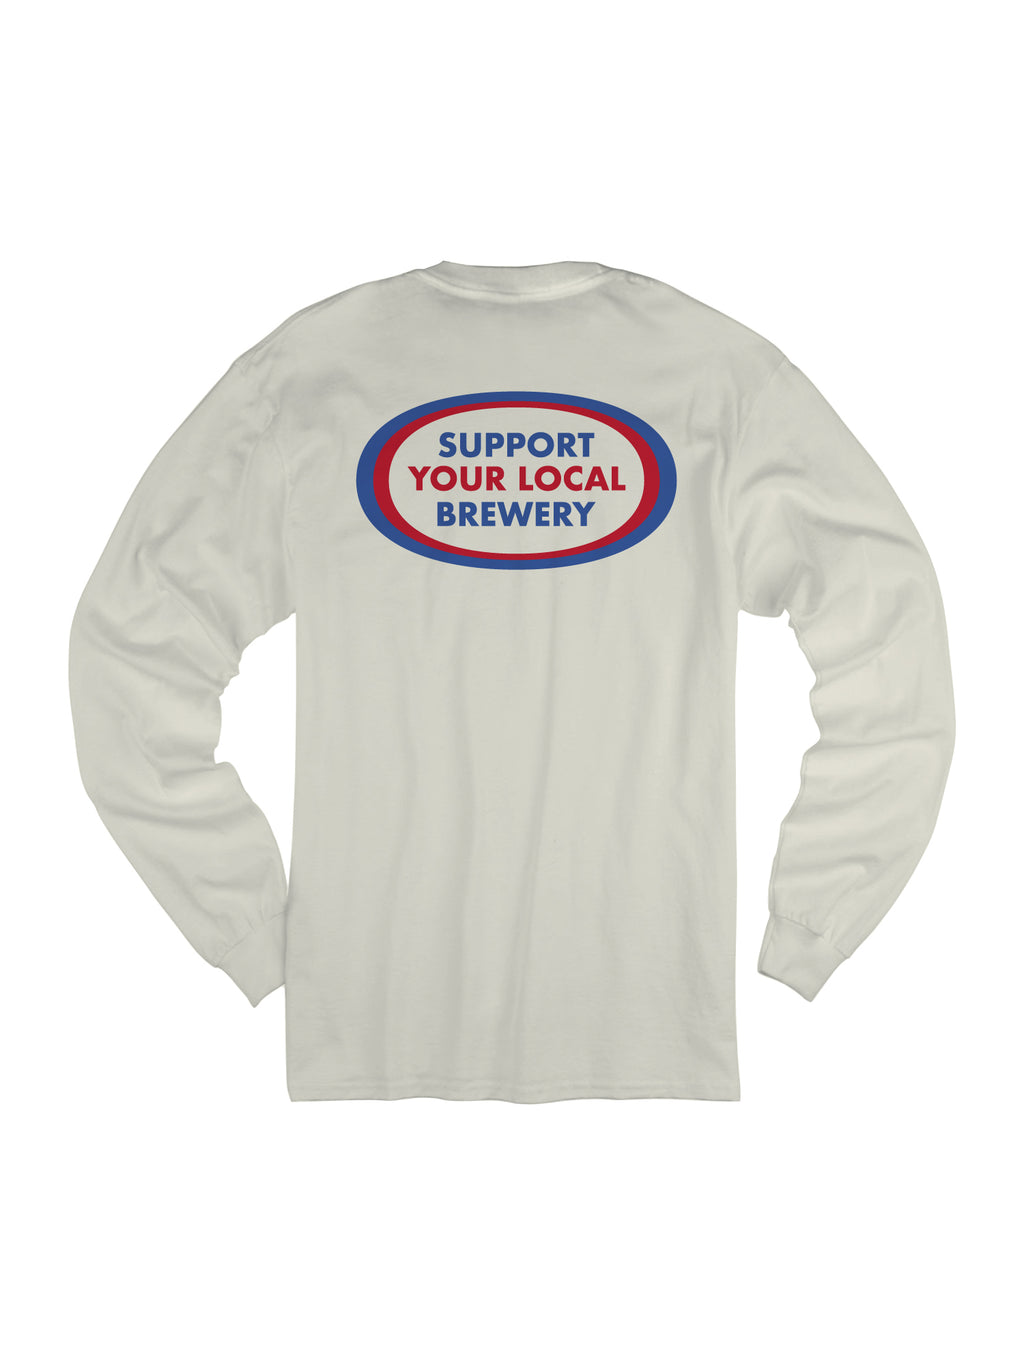 SUPPORT YOUR LOCAL BREWERY L/S - VINTAGE WHITE - Tankfarm & Co.